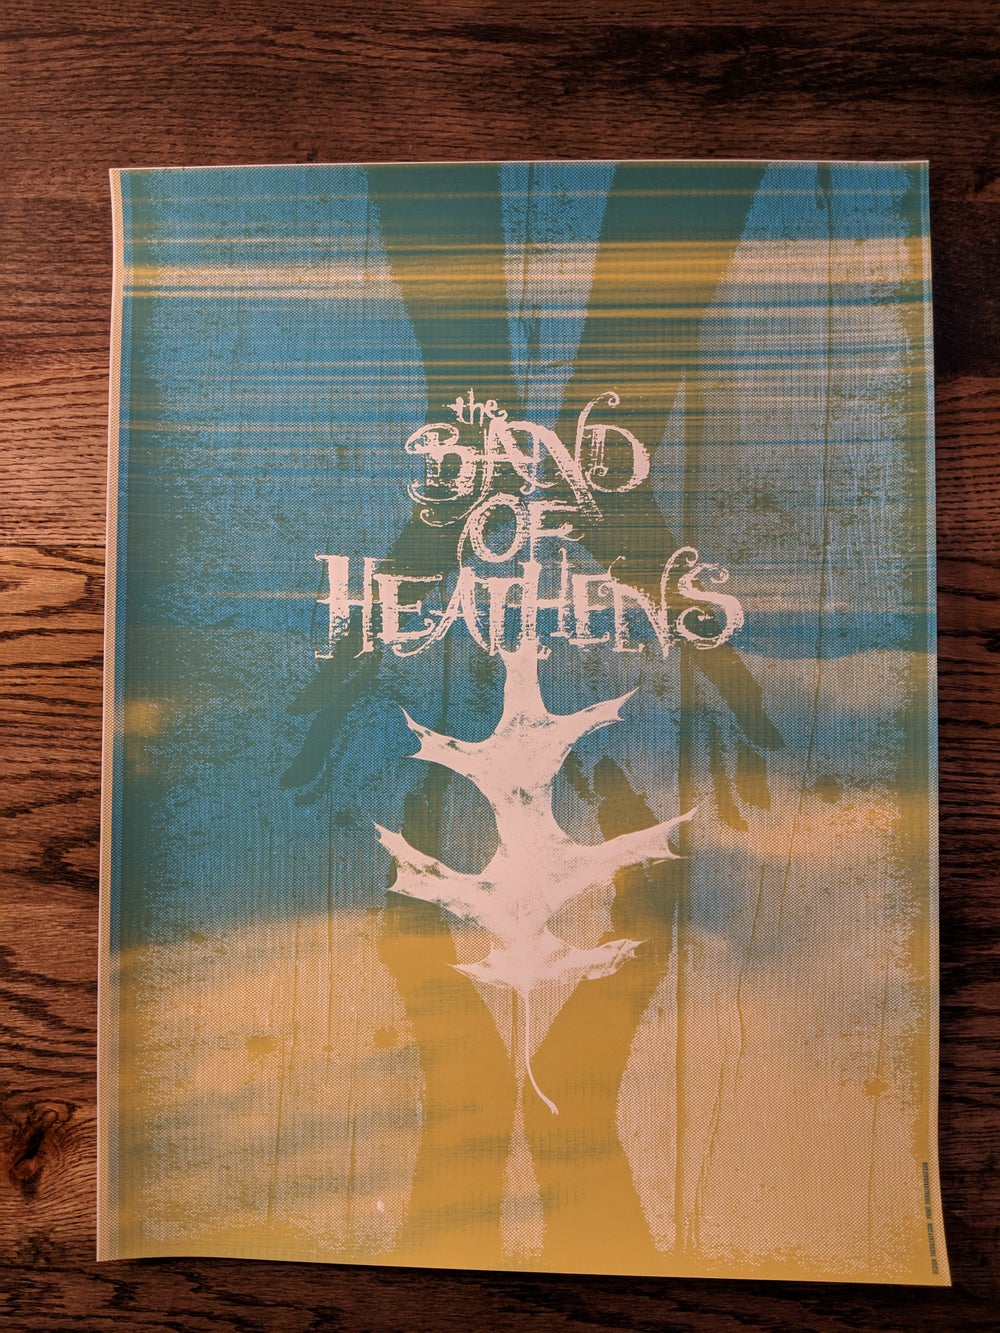 Band of Heathens Poster